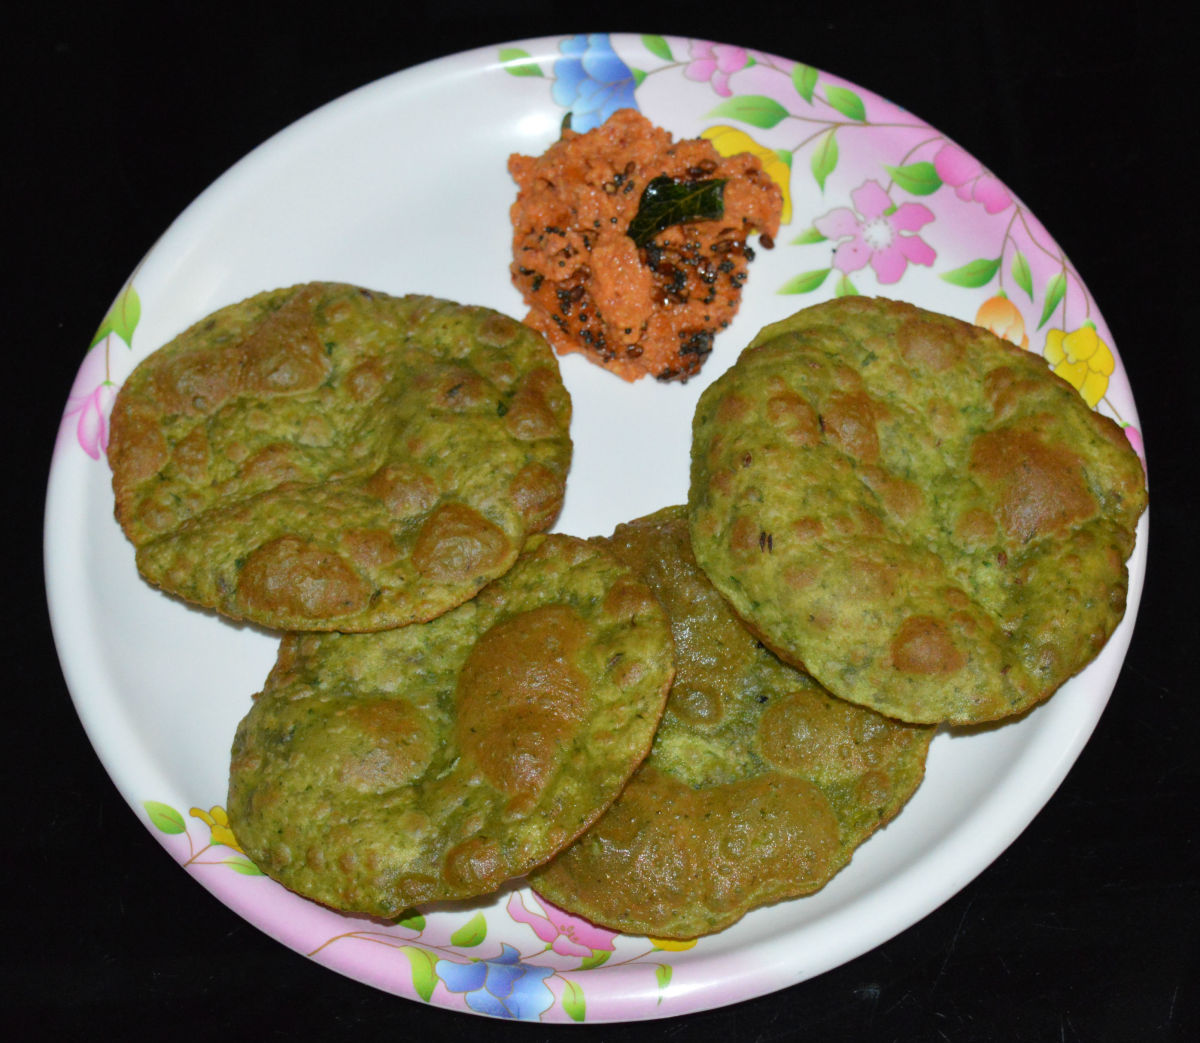 Step four: Serve hot poori with a spicy chutney or with a savory curry/bhaji. Enjoy this delightful combo!